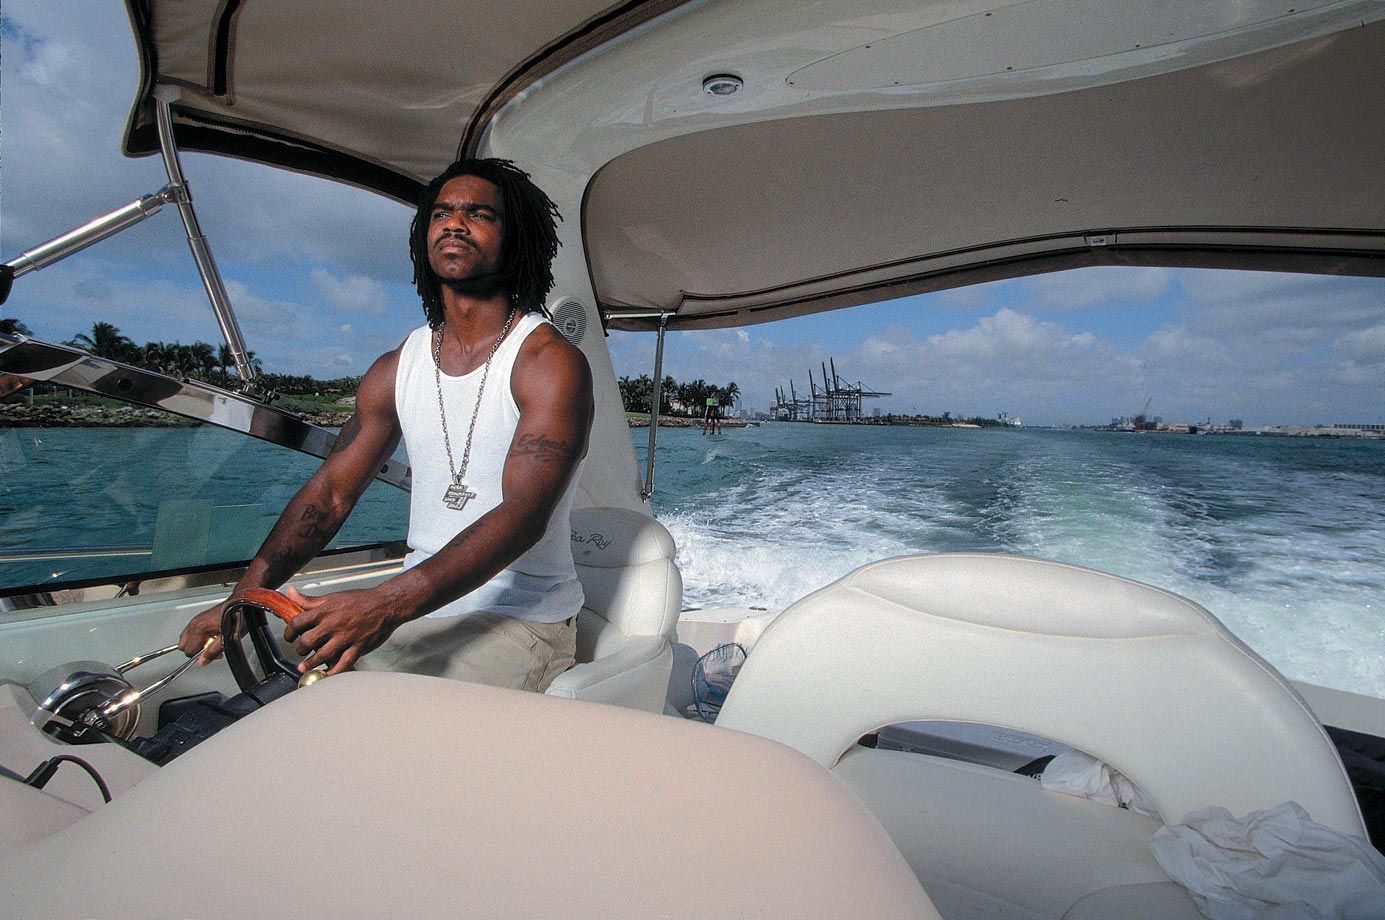 The Indianapolis Colts running back steers his boat near Miami in 2001.